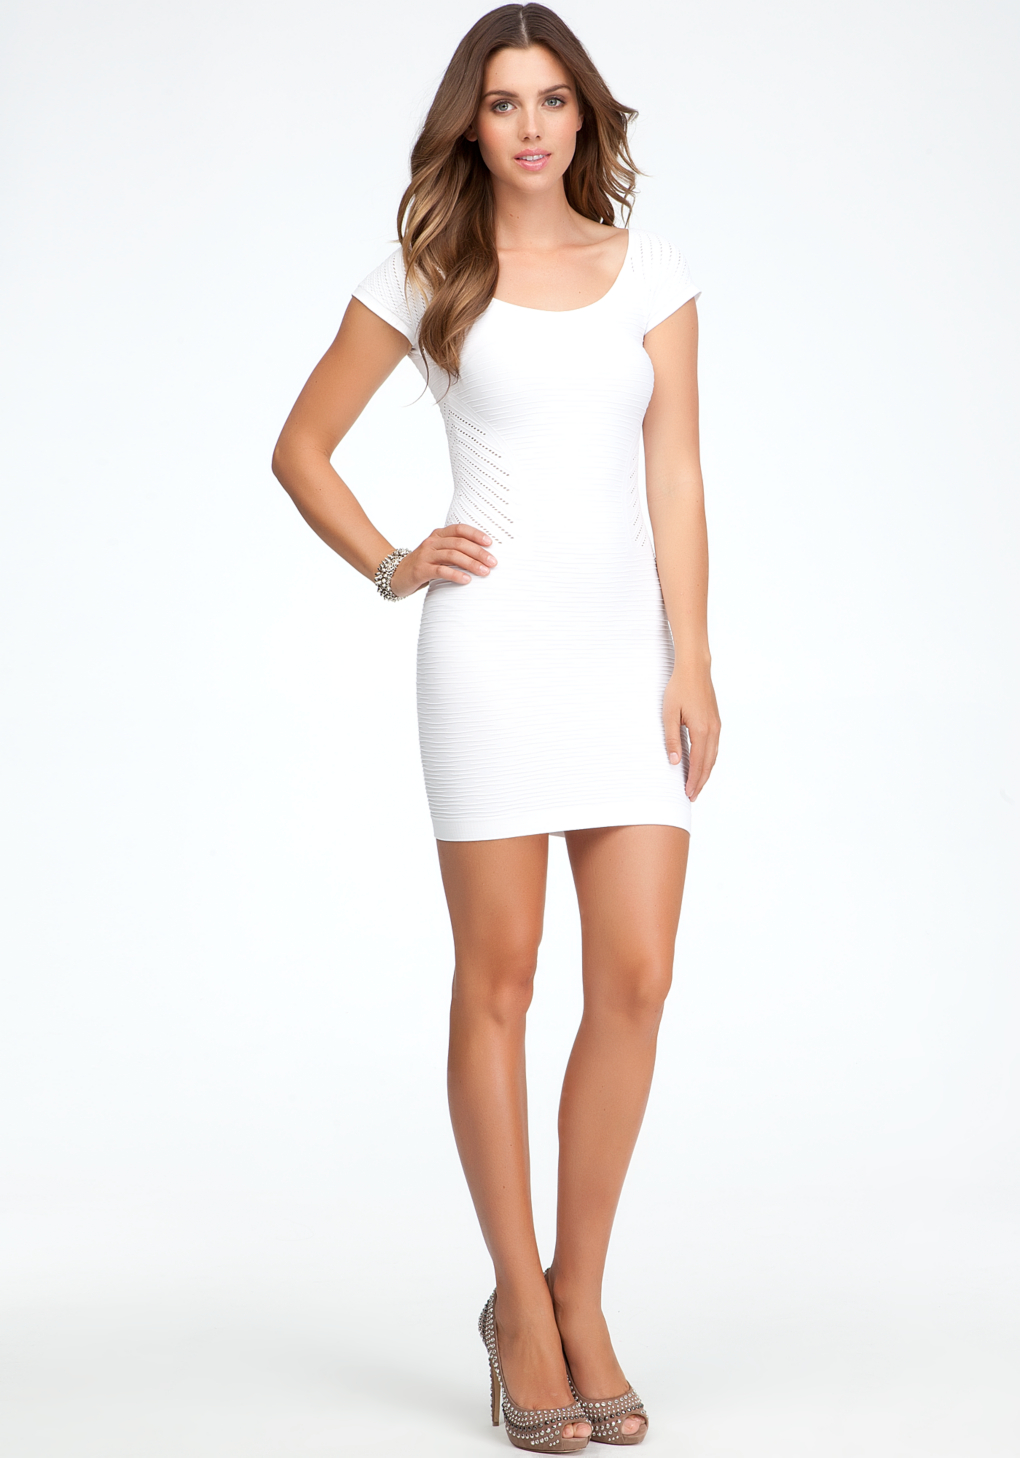 Without bodycon dress with gloves the front key